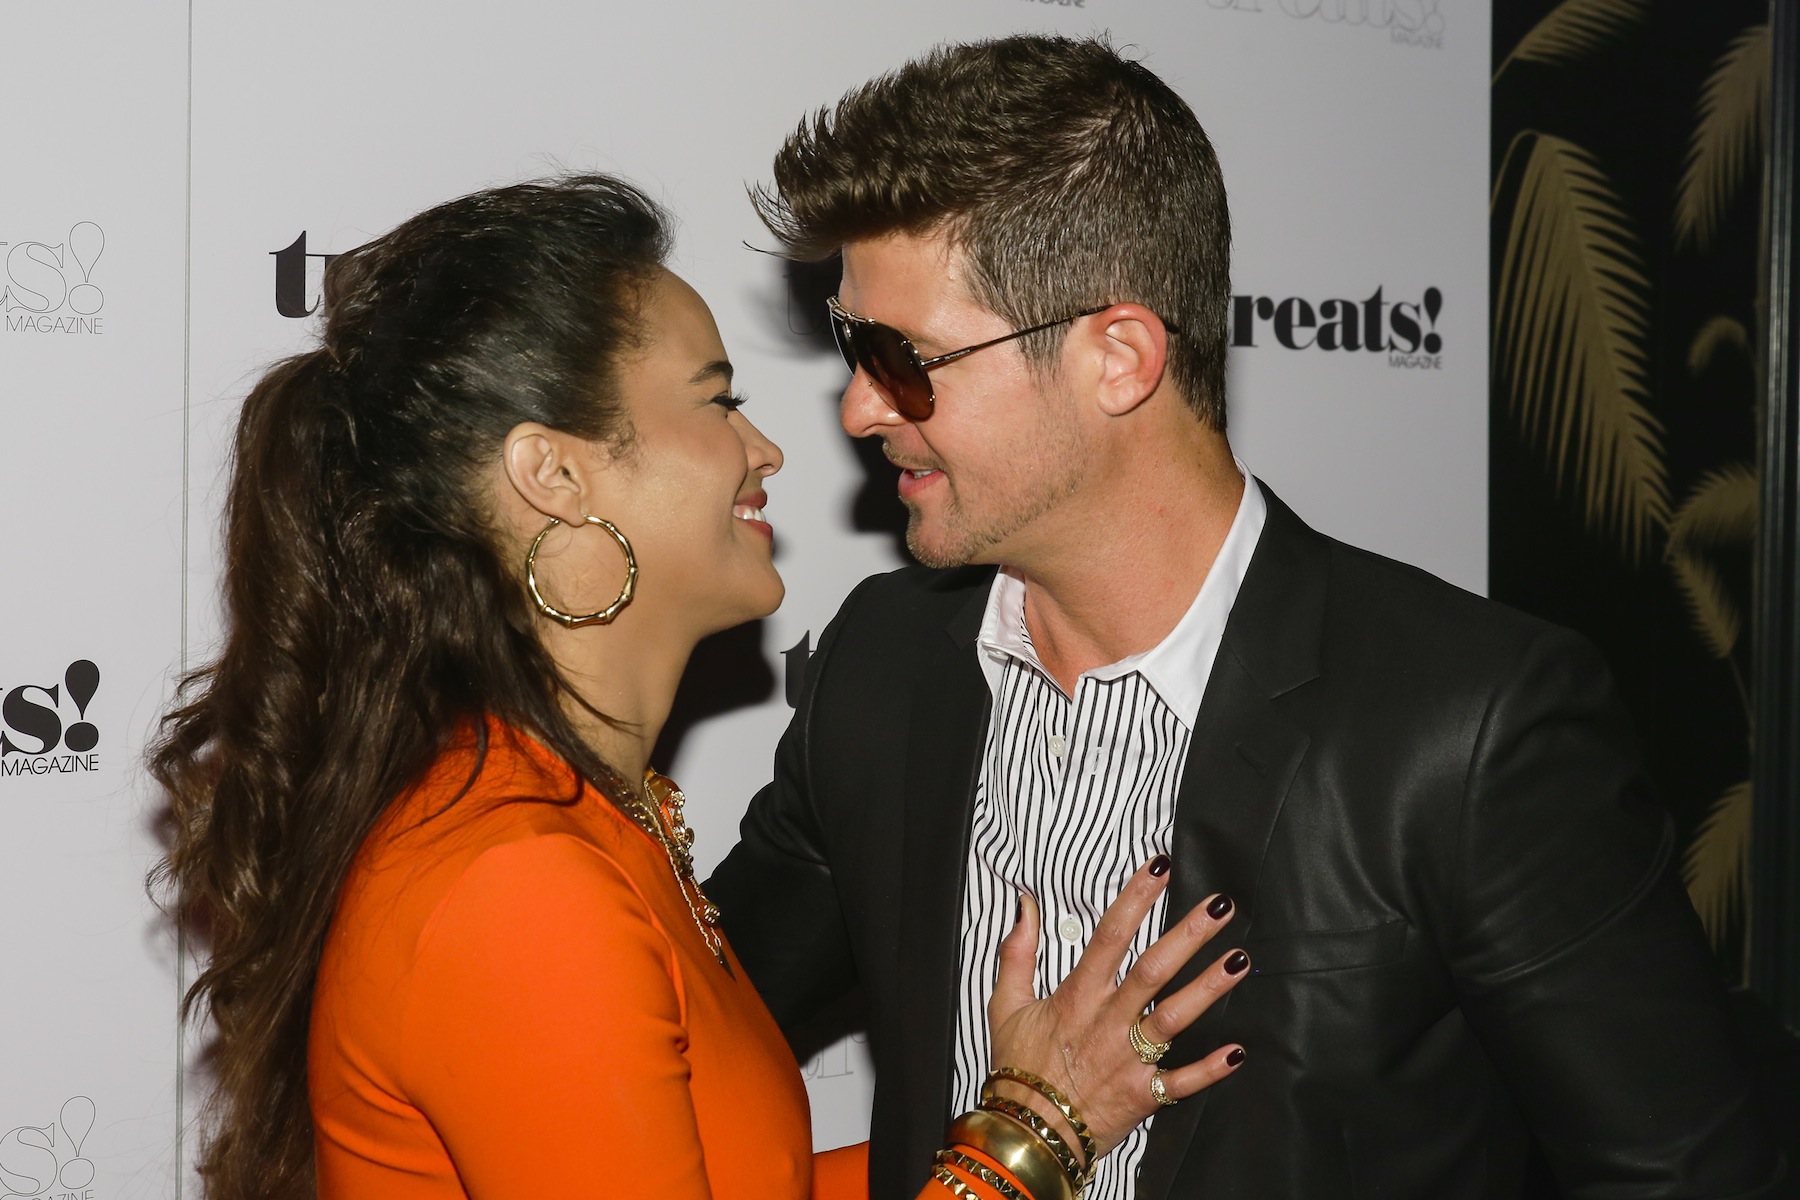 Paula Patton and Robin Thicke attend a Robin Thicke album release party on Sept. 4, 2013, in New York City.